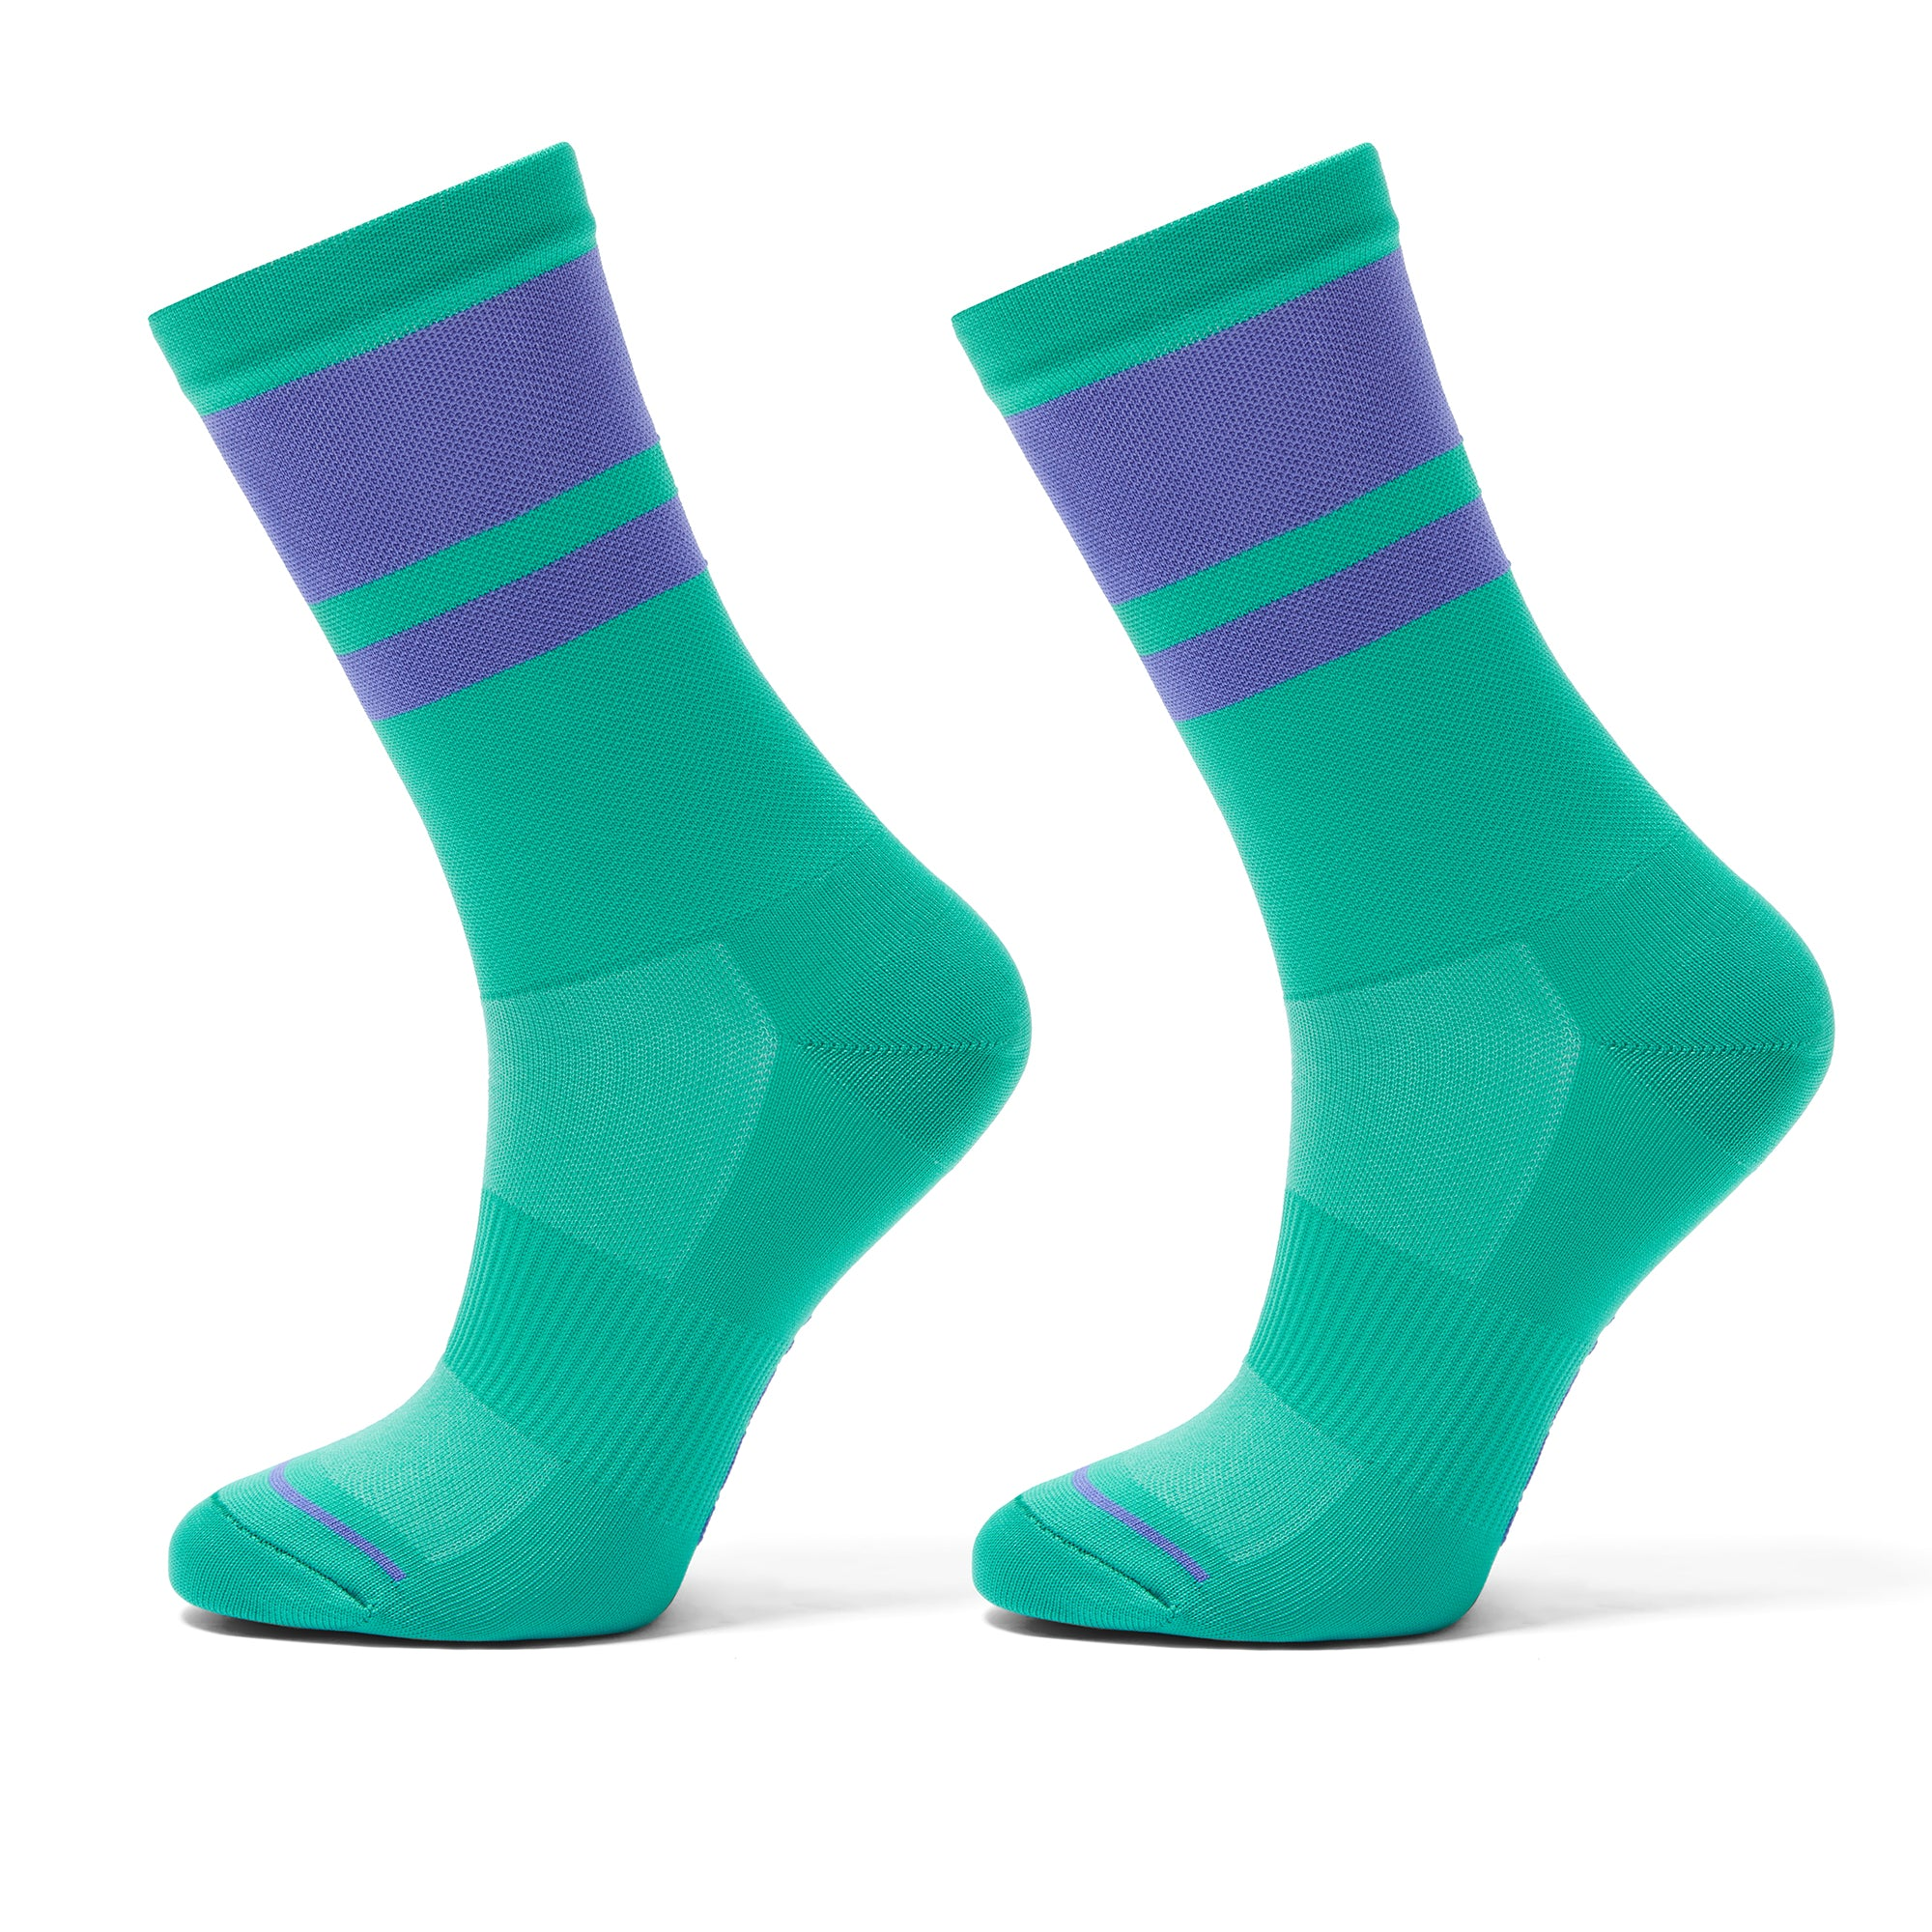 Cycling socks green/purple